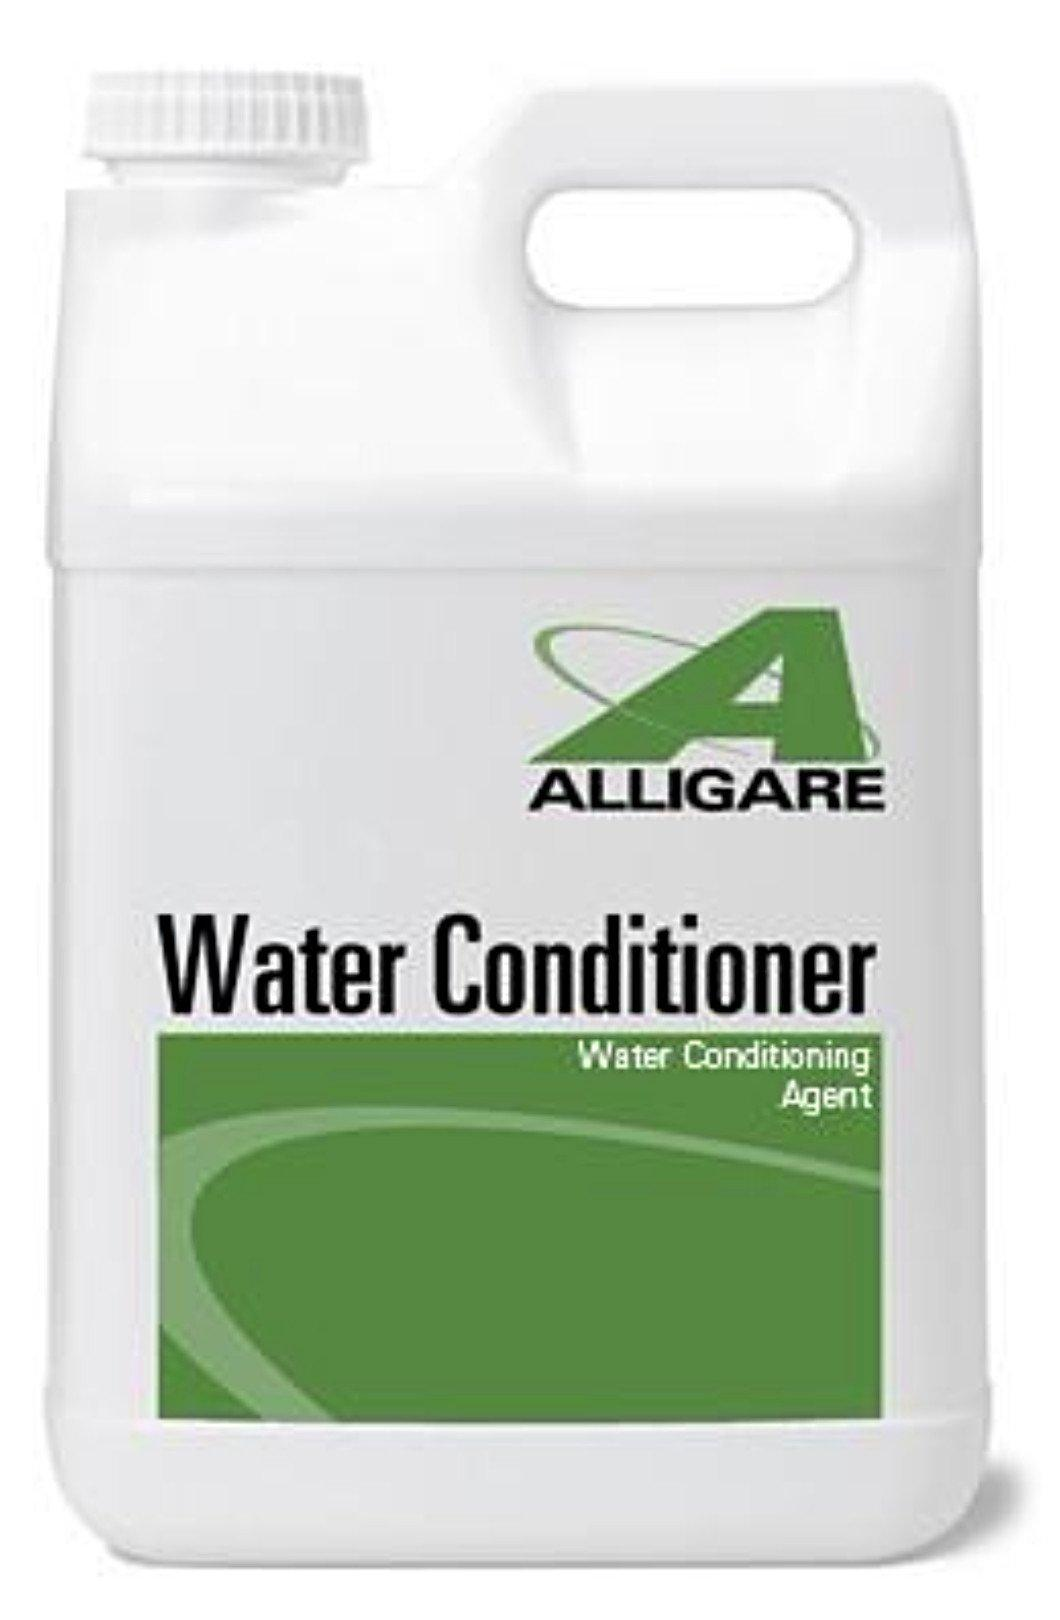 Surfactant - Water Conditioner For Pesticides